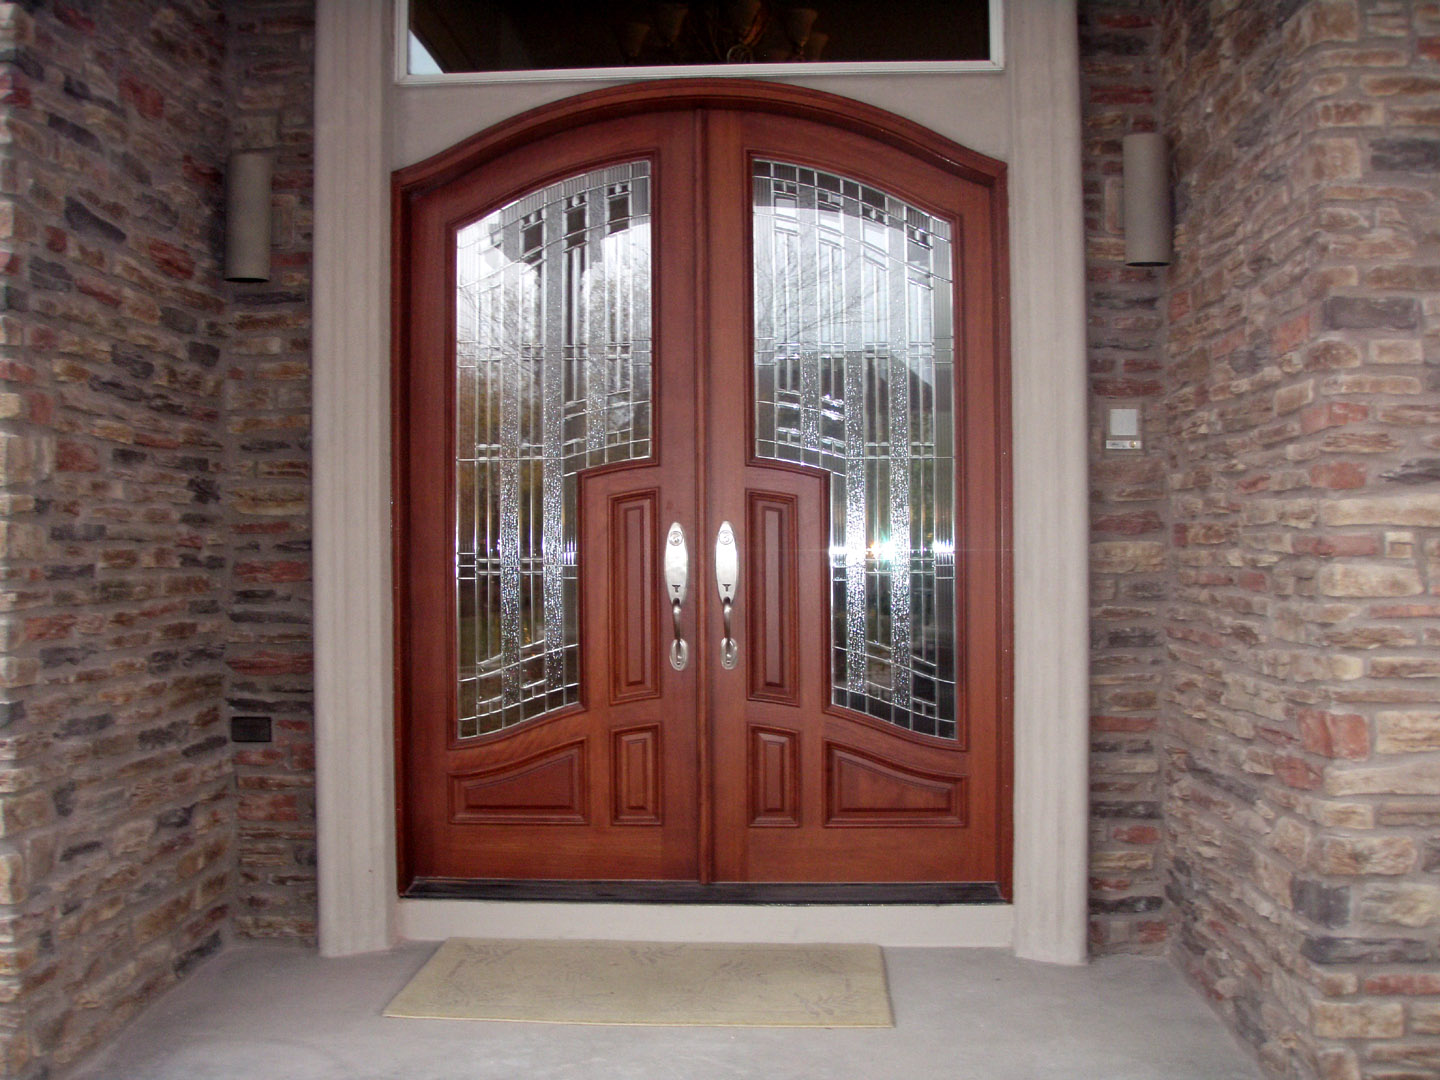 Wood doors front doors entry doors exterior doors for for External entrance doors